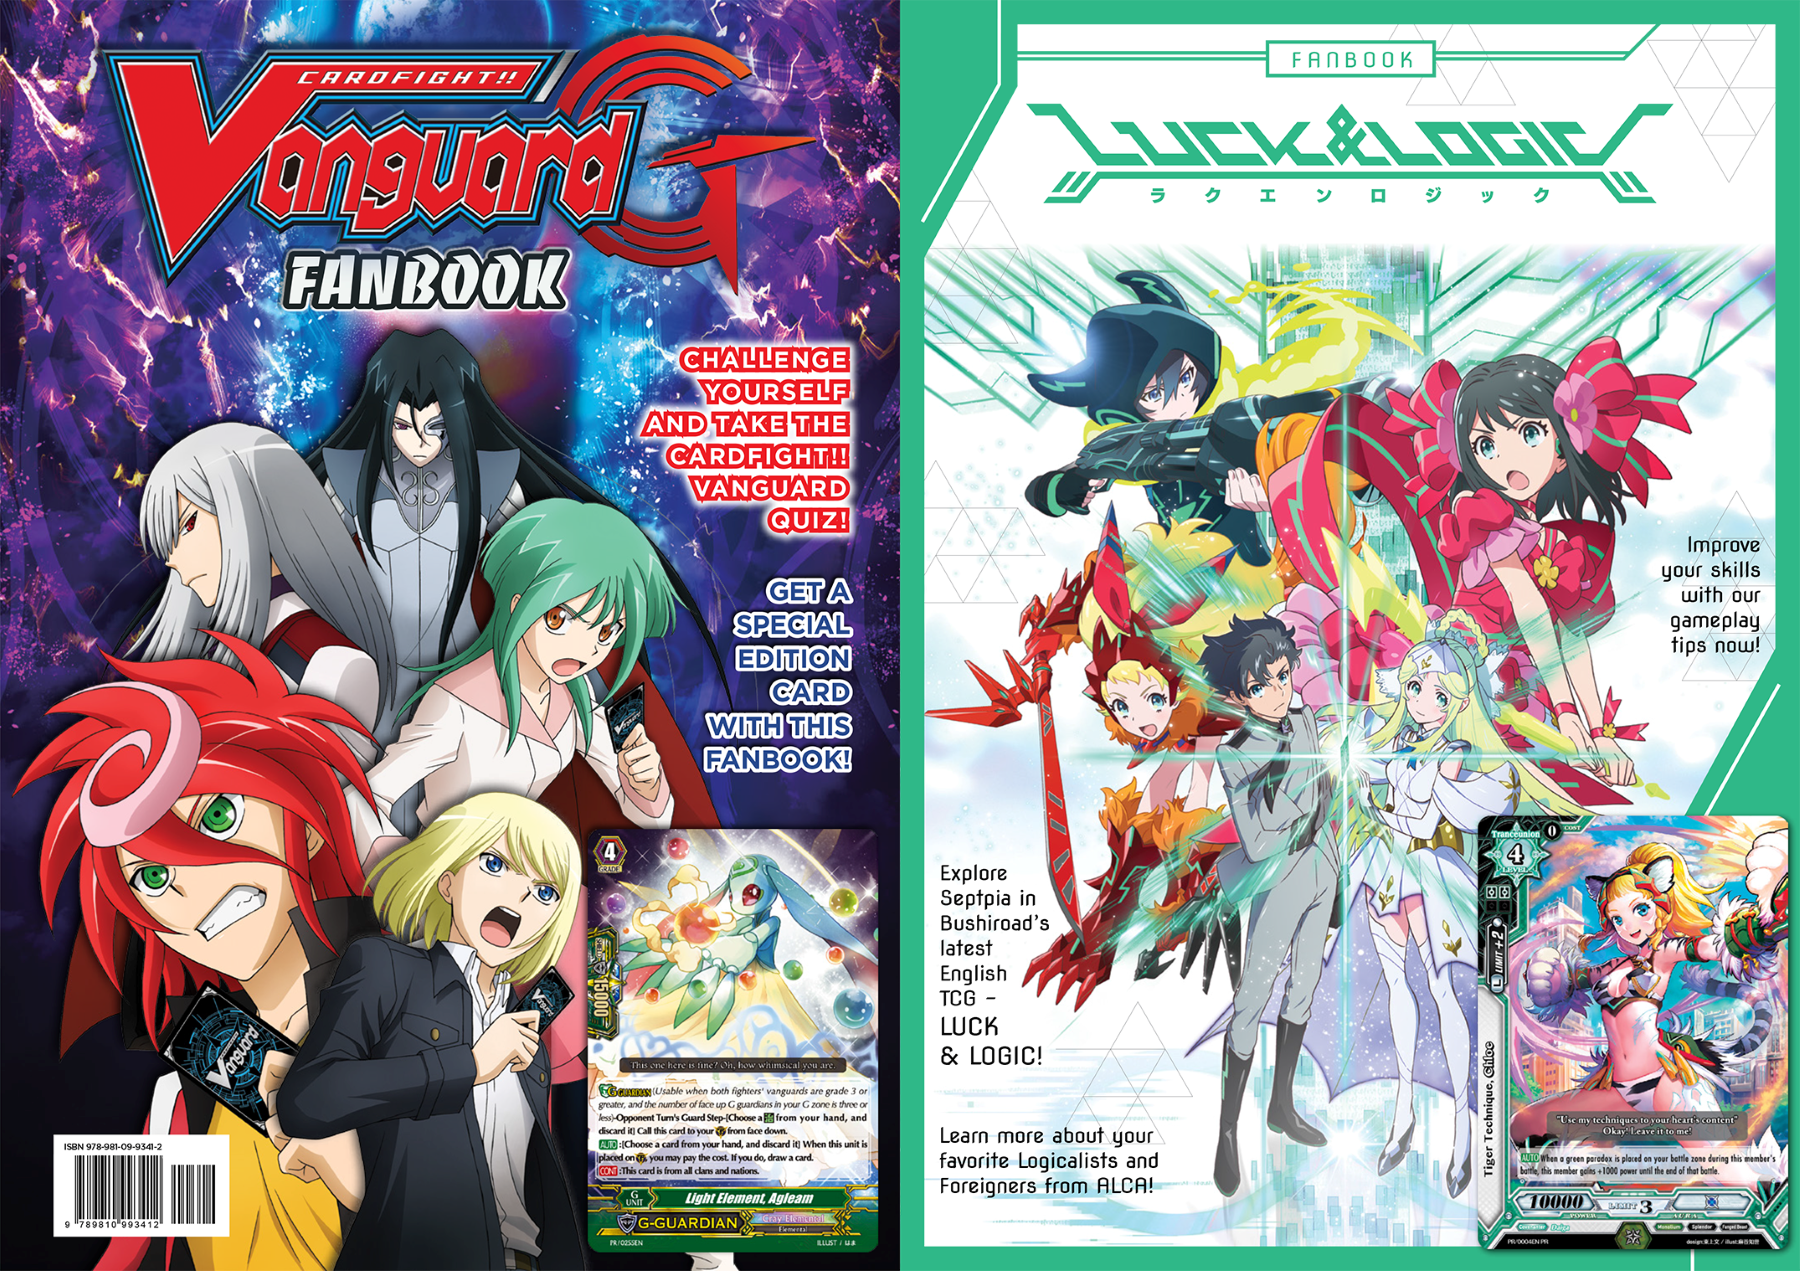 This Year, We Are Going To Have The 3rd Fanbook! This Fanbook Will Be A  Collaboration Between Luck & Logic, The New Tcg From Bushiroad, And  Cardfight!!